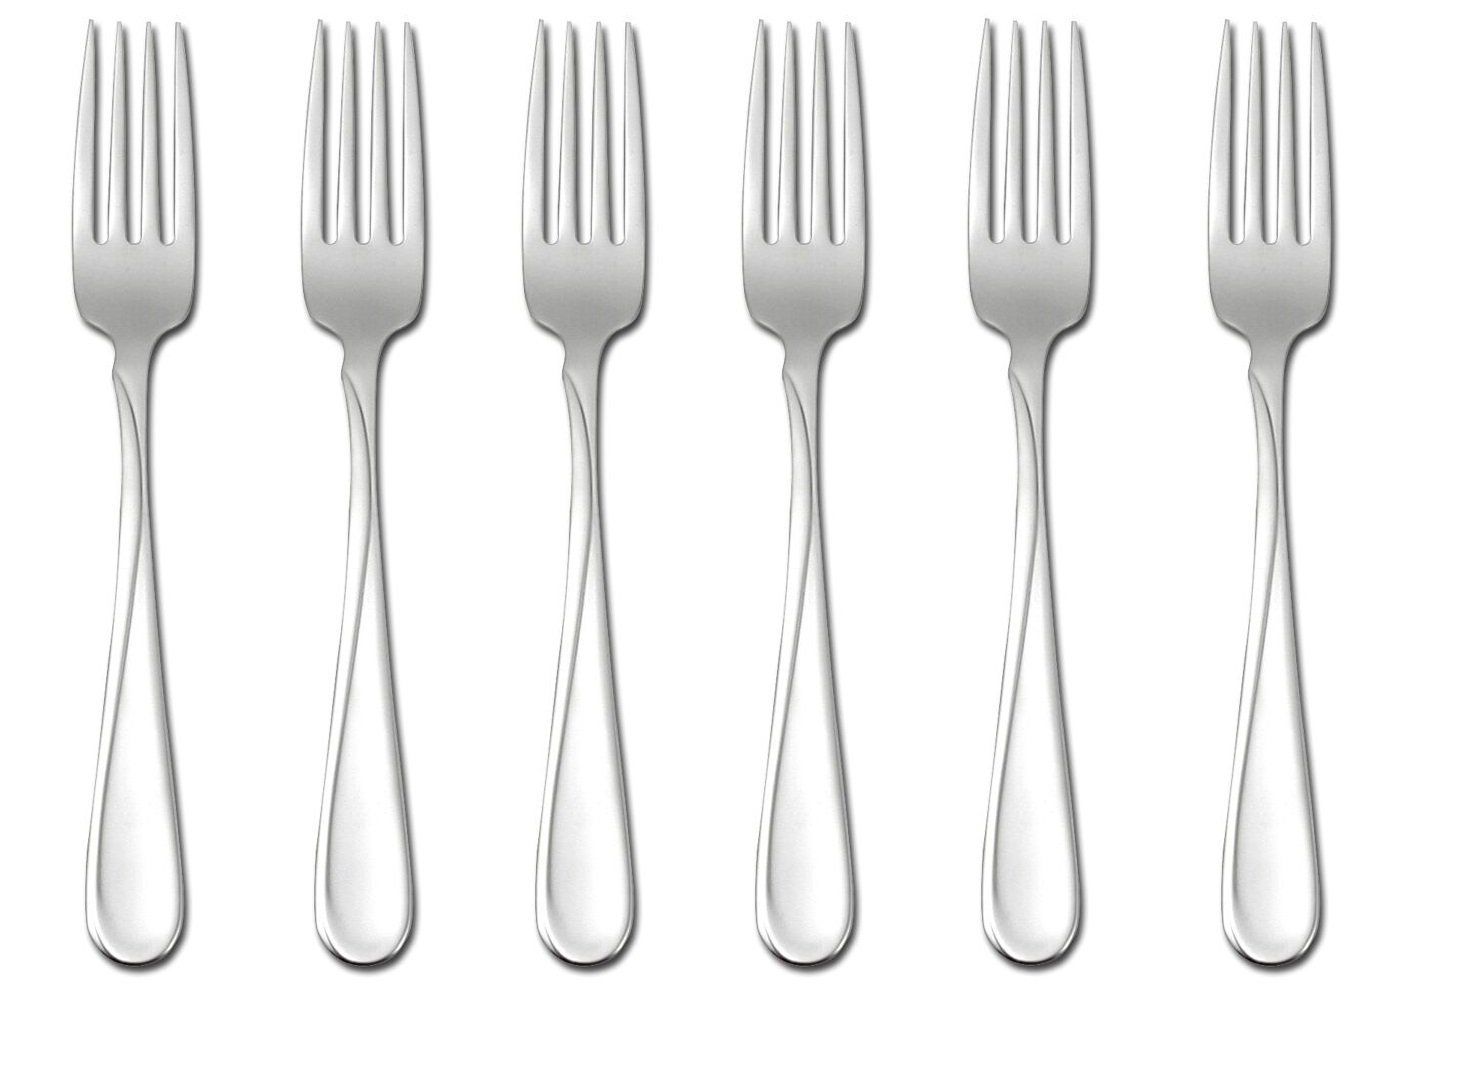 Oneida Flight Dinner Forks, Set of 6 by Oneida (Image #1)